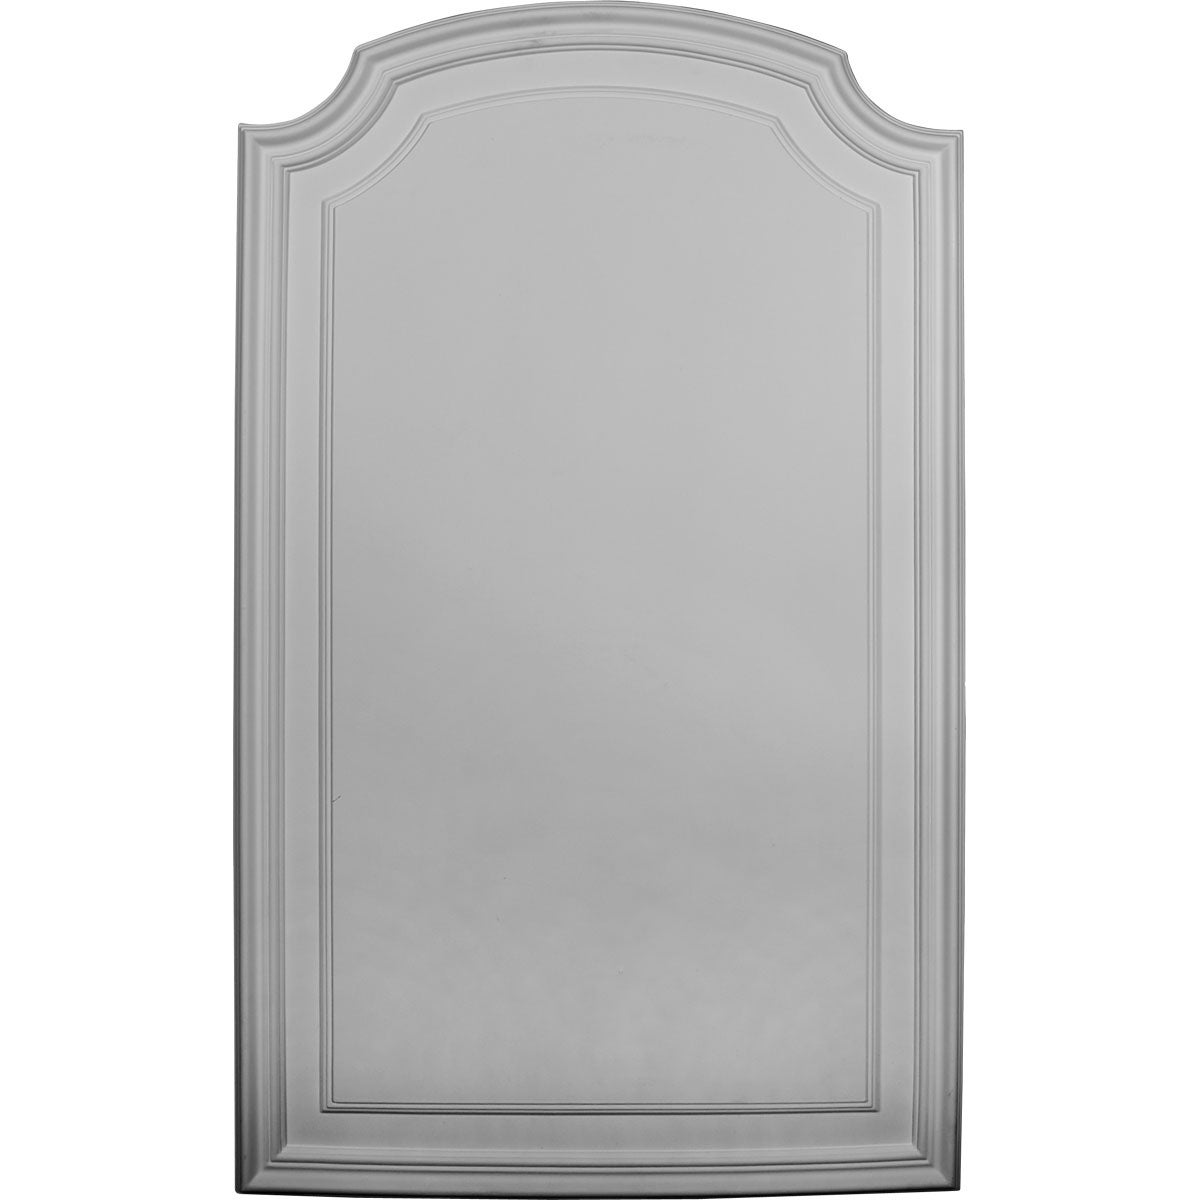 21 5/8W x 35 5/8H x 5/8P Legacy Arch Top Wall/Door Panel (1-Pack)